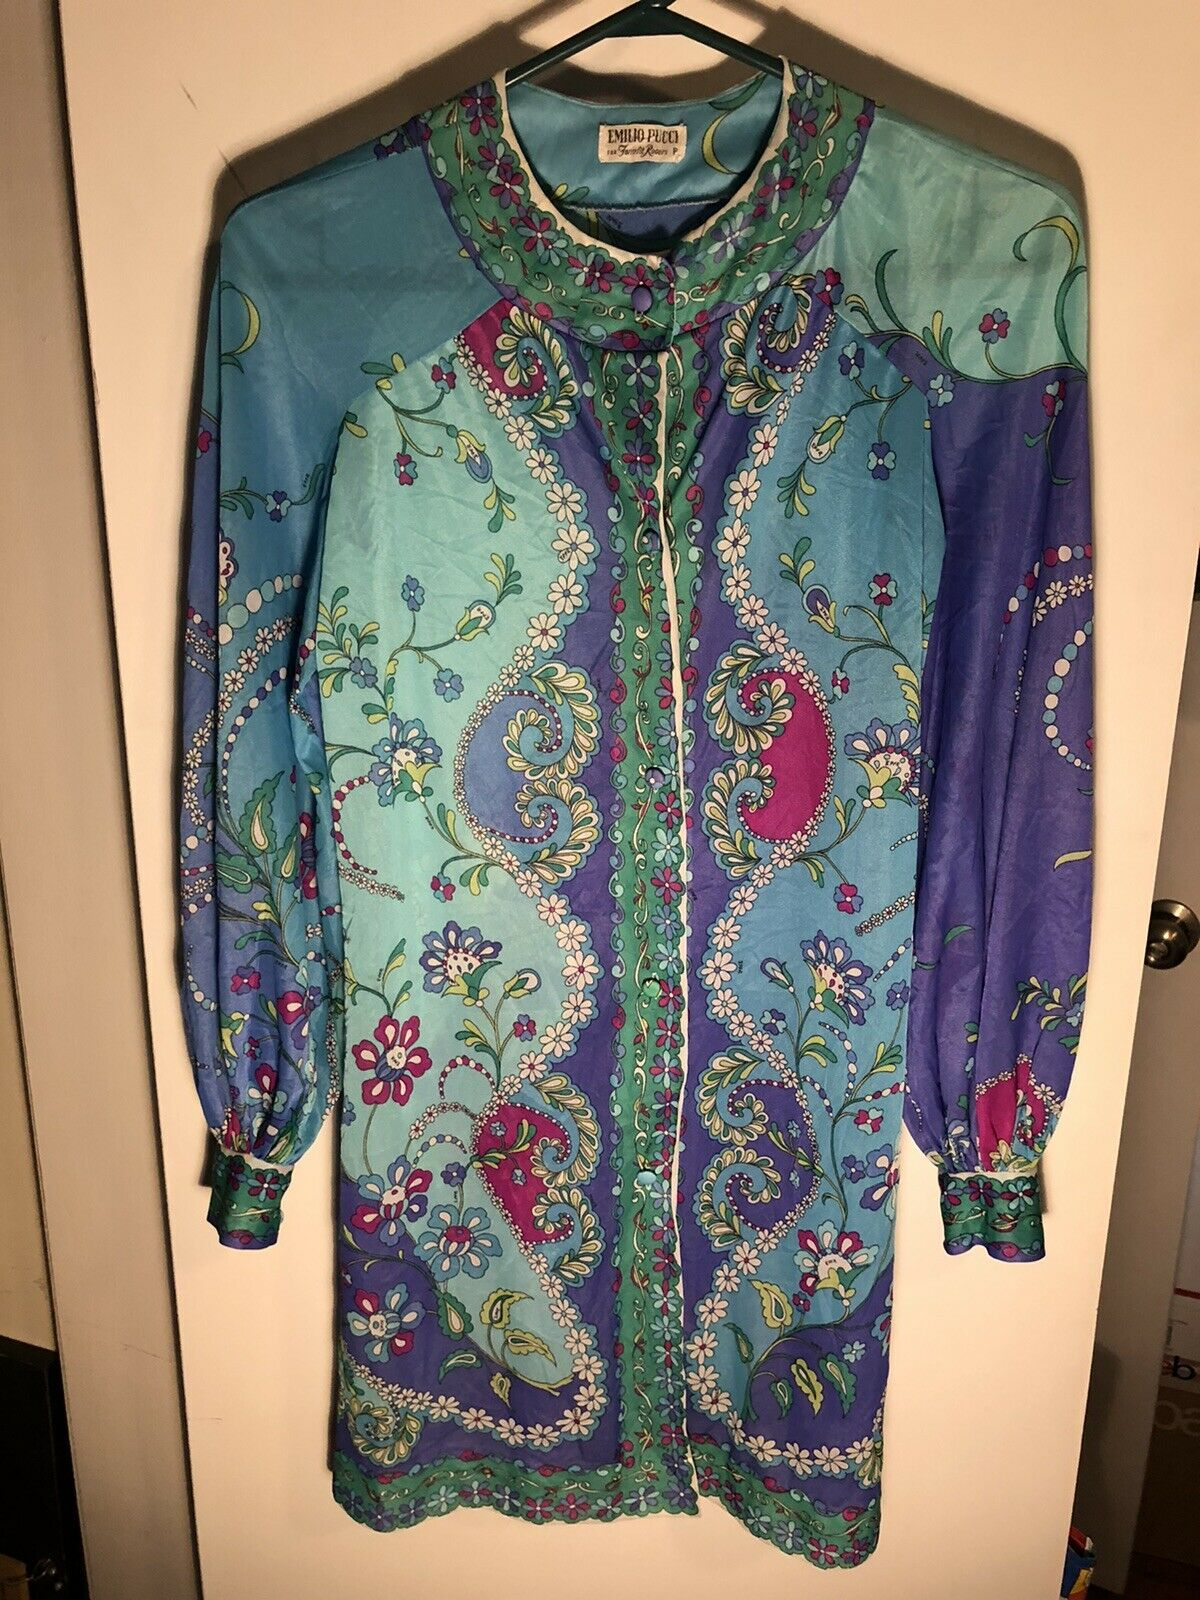 VTG 60s EMILIO PUCCI Mod Paisley Teal Blue Dress ITALY Womens Size 8 -10